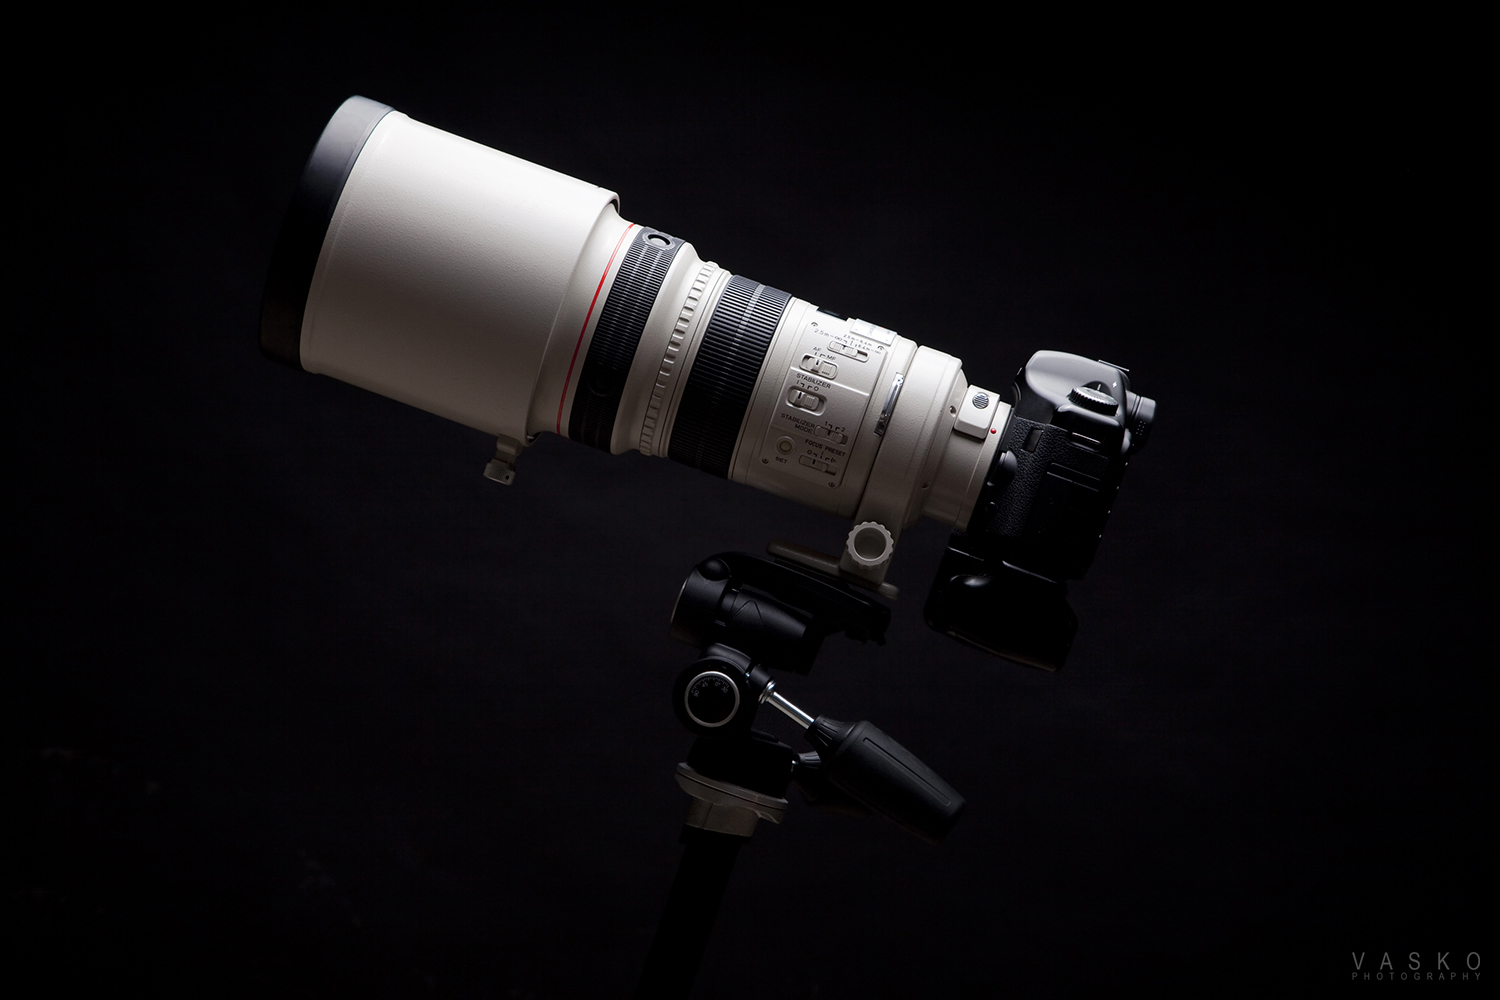 Canon 300mm f2.8L IS USM I 5D Classic - Vasko Photography